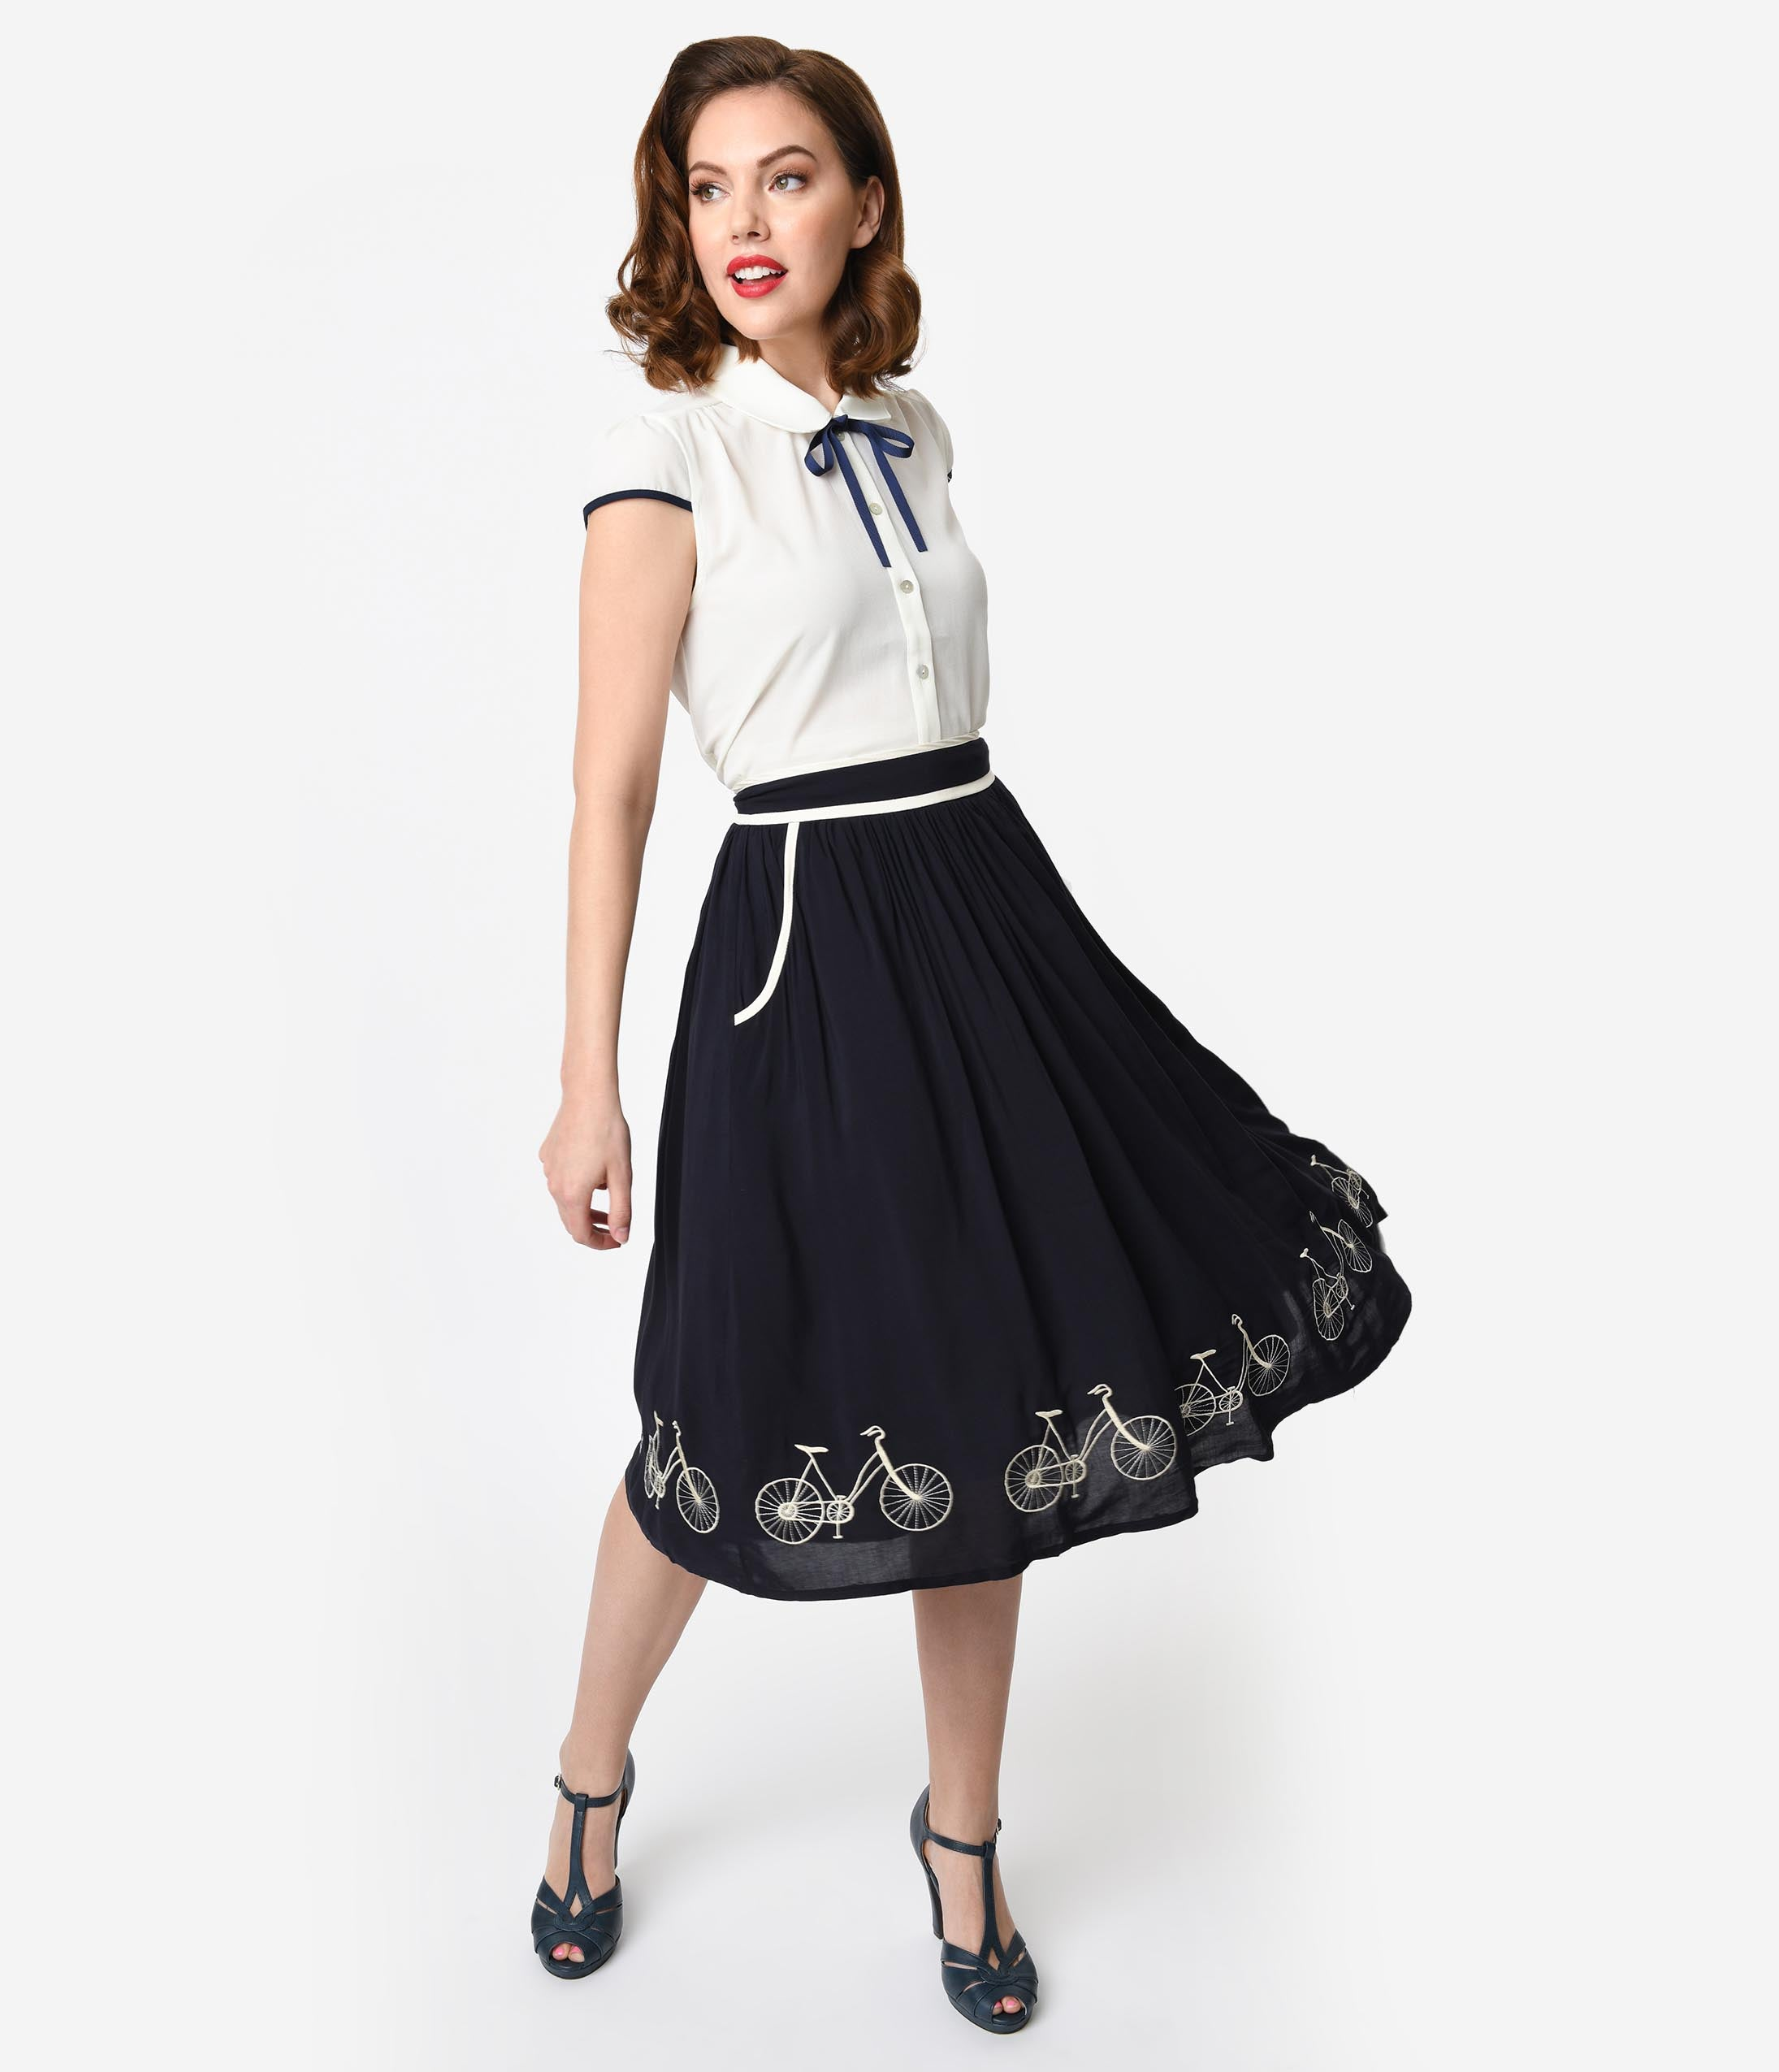 Retro Skirts: Vintage, Pencil, Circle, & Plus Sizes 1950S Style Navy Blue  Ivory Embroidered Bicycle Border Swing Skirt $48.00 AT vintagedancer.com